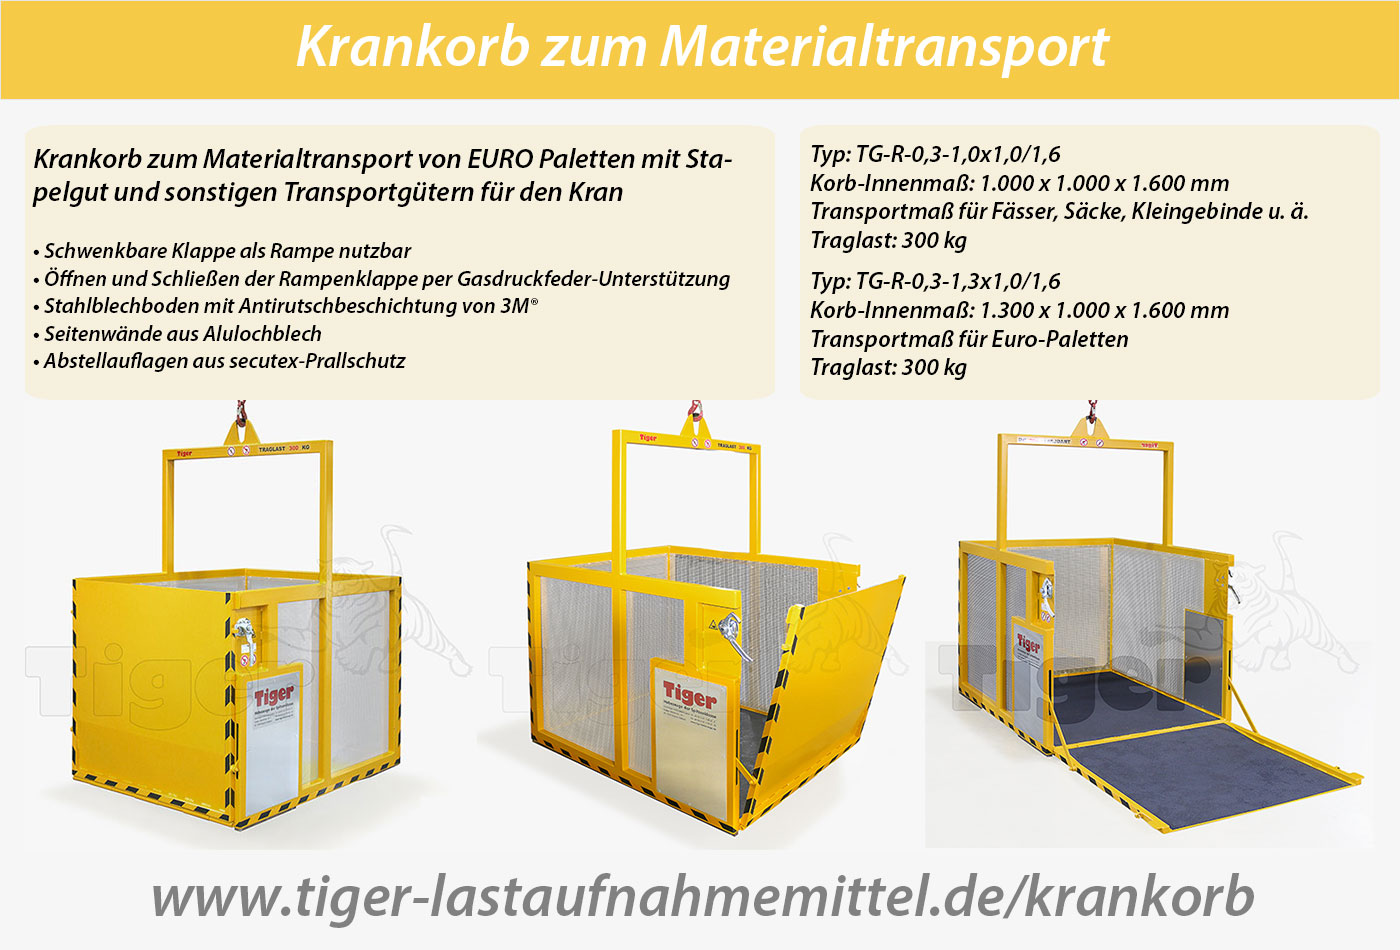 Materialtransport mit Krankorb